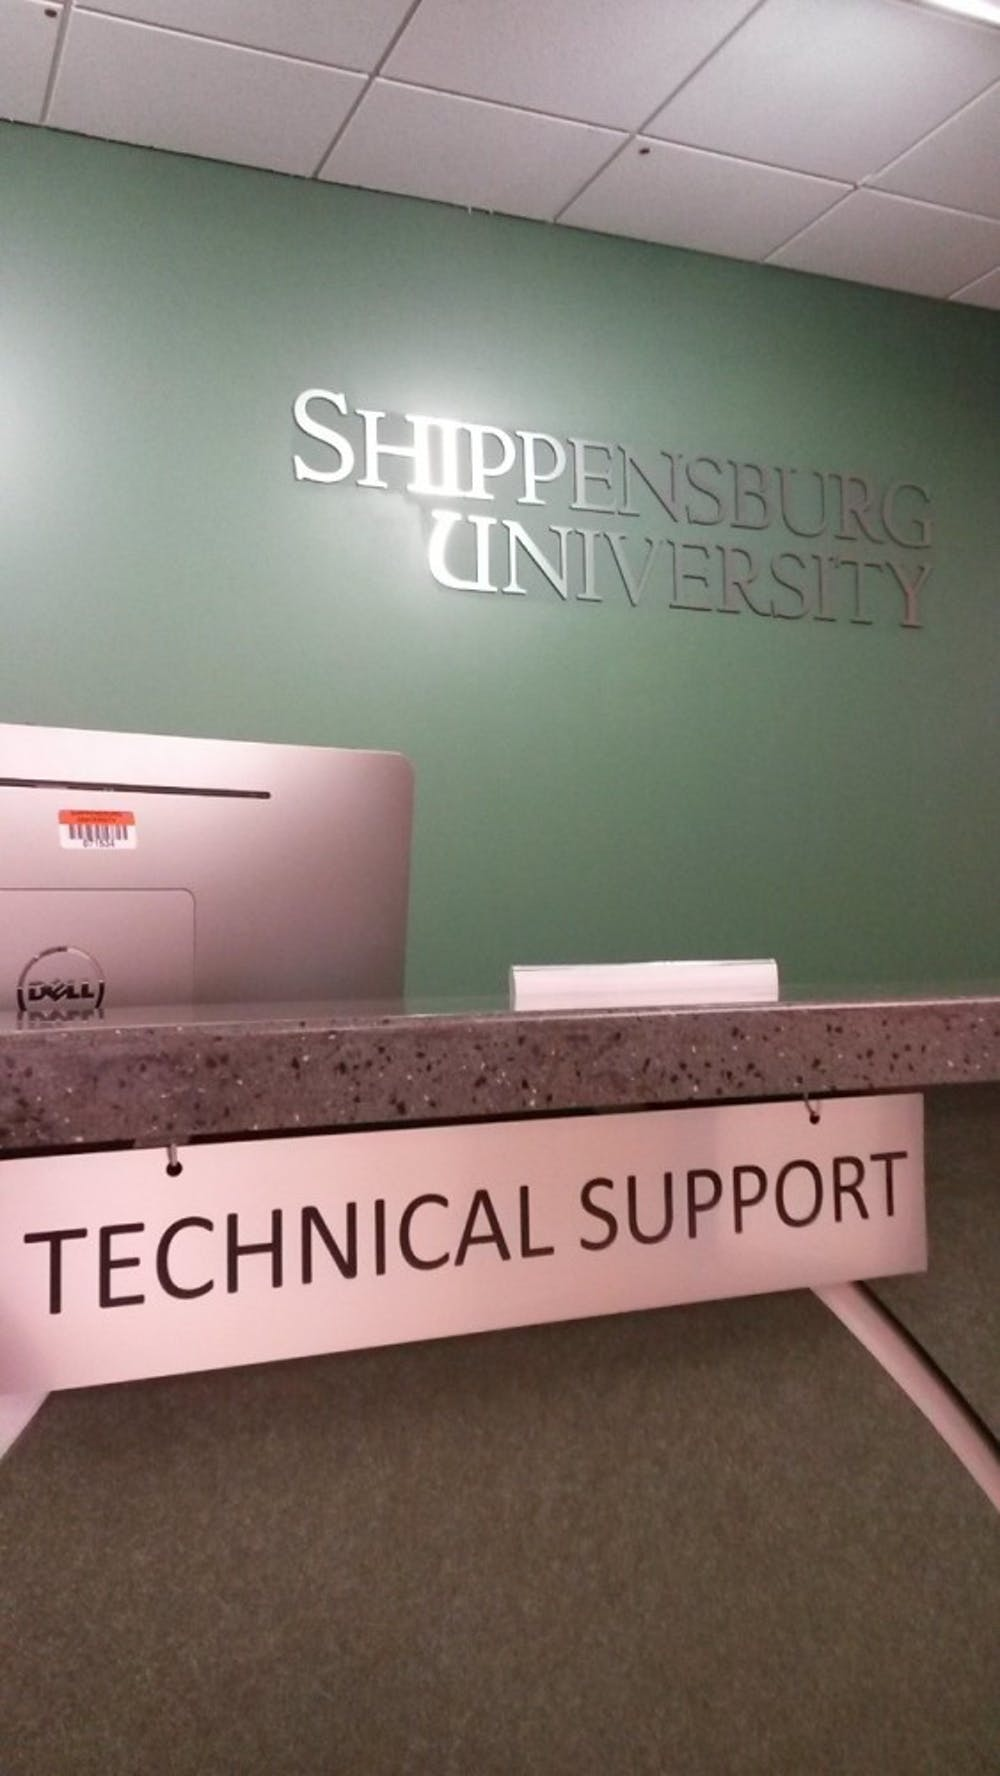 Student Help Desk offers technical support